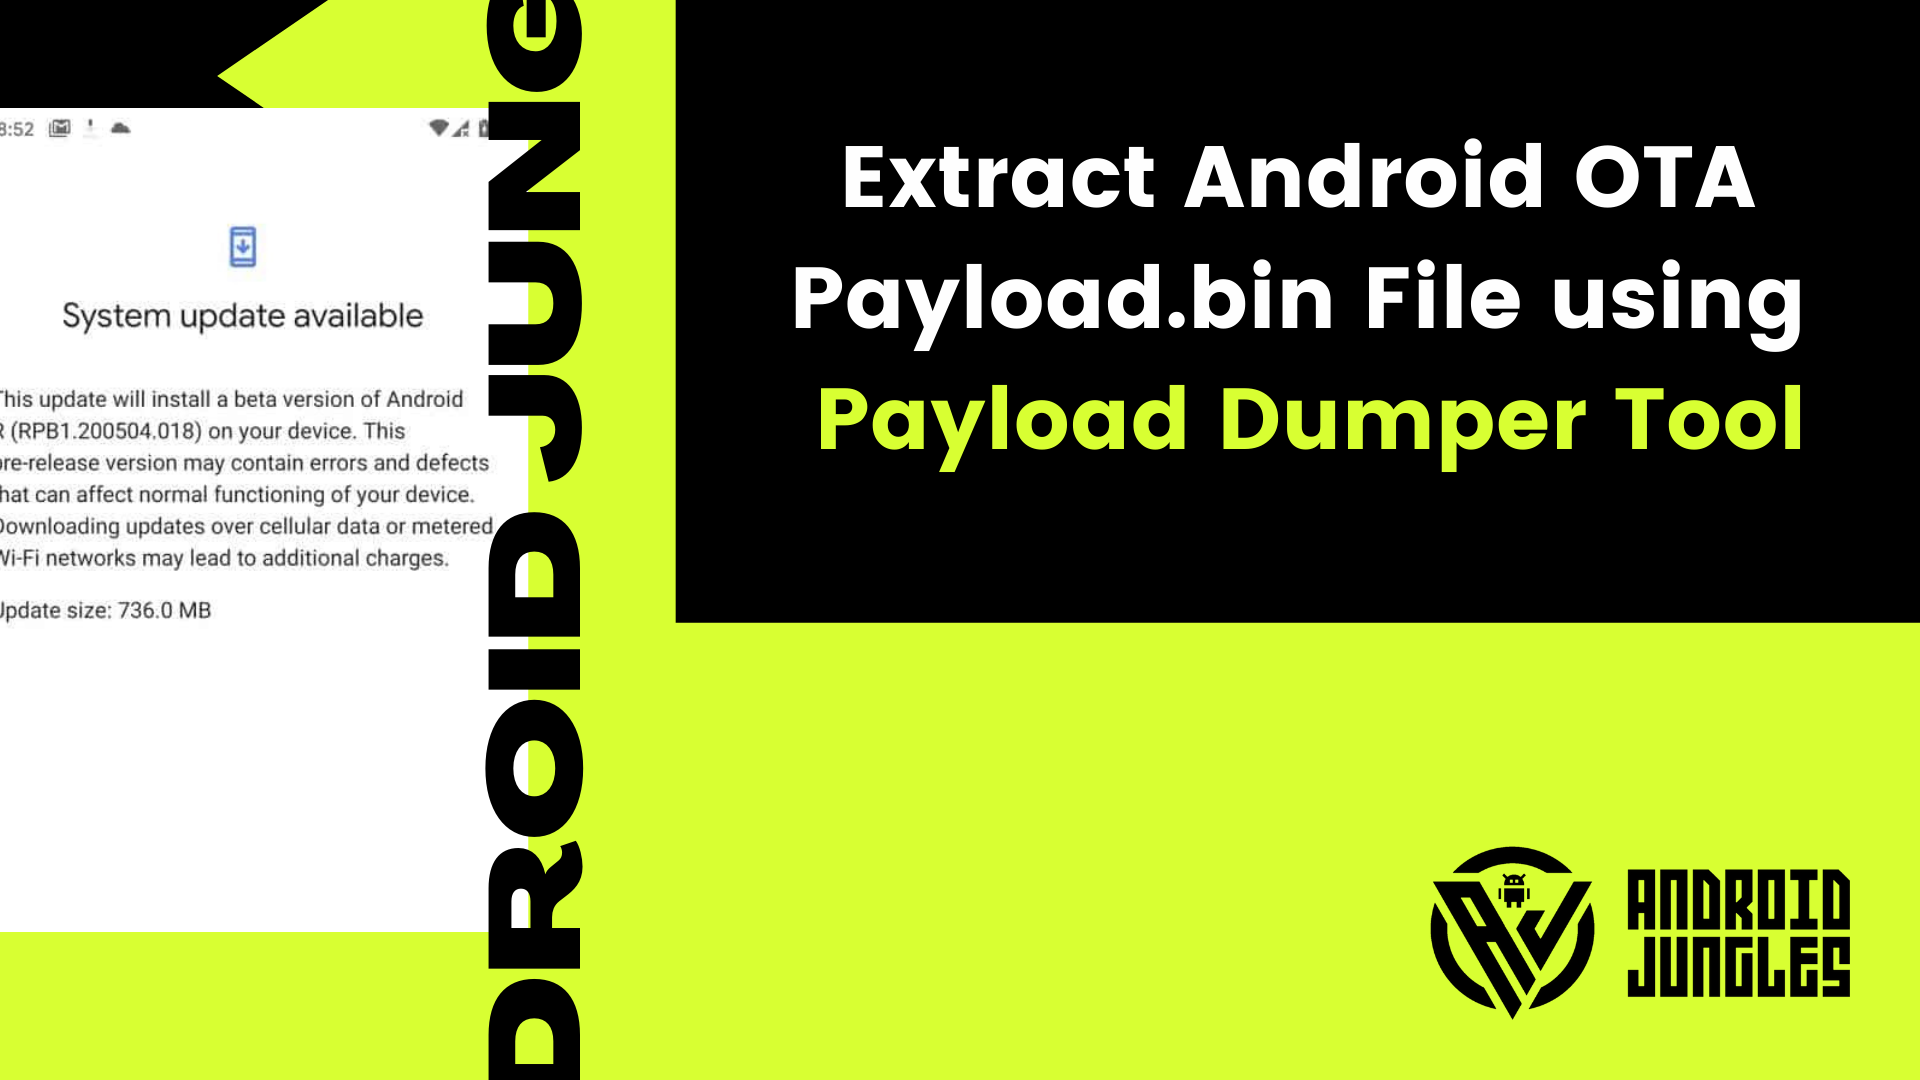 How to Extract Android OTA Payload.bin File using Payload Dumper Tool